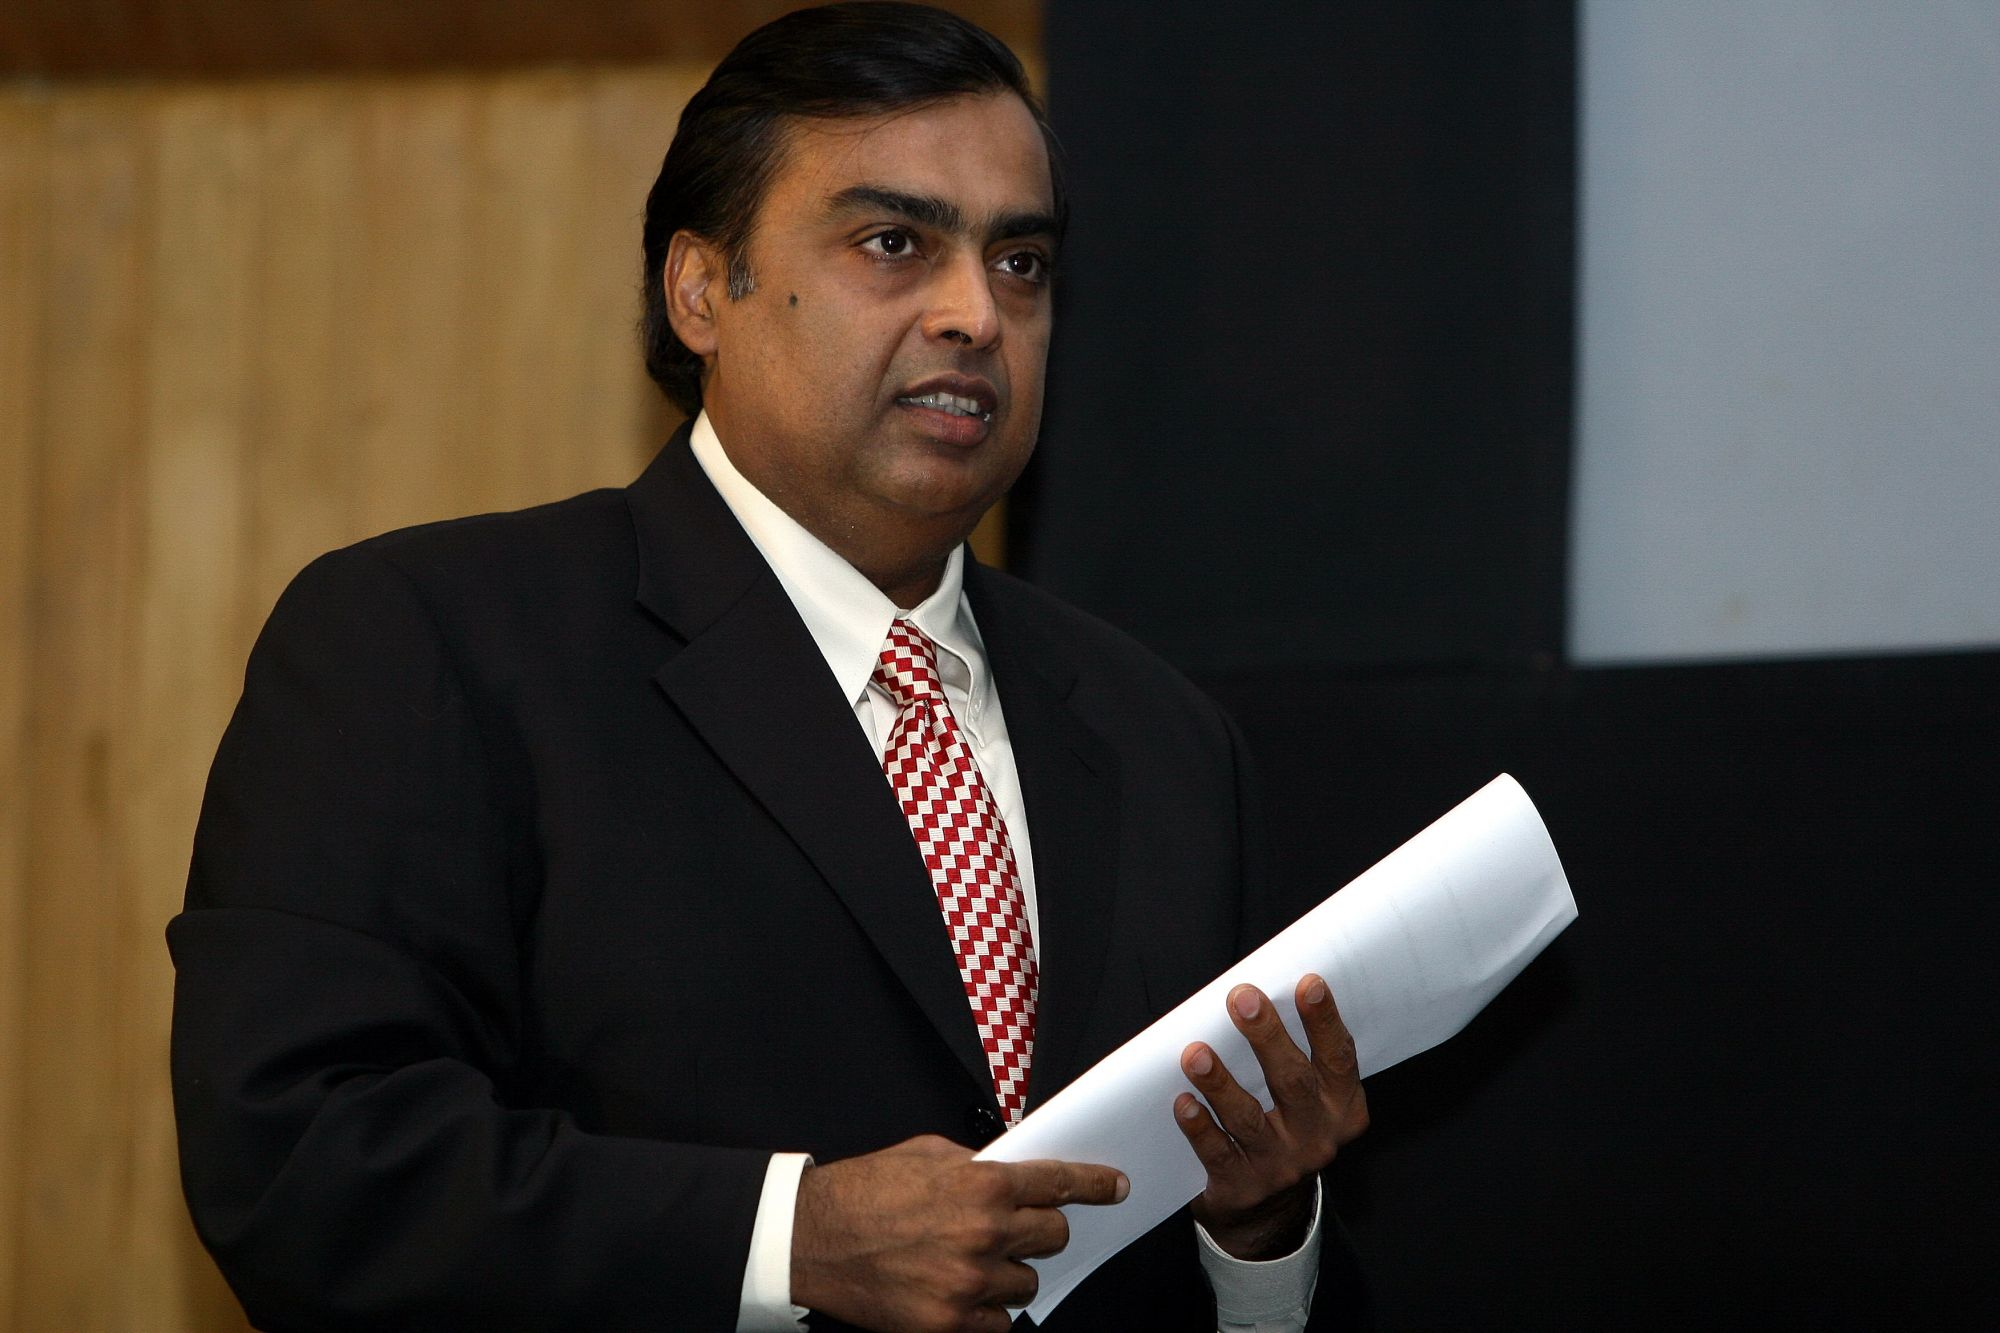 INDIA - AUGUST 21:  Mukesh Ambani, Chairman and MD, Reliance Industries Limited (RIL), Delhi, India.  (Photo by Debasis Palit/The The India Today Group via Getty Images)